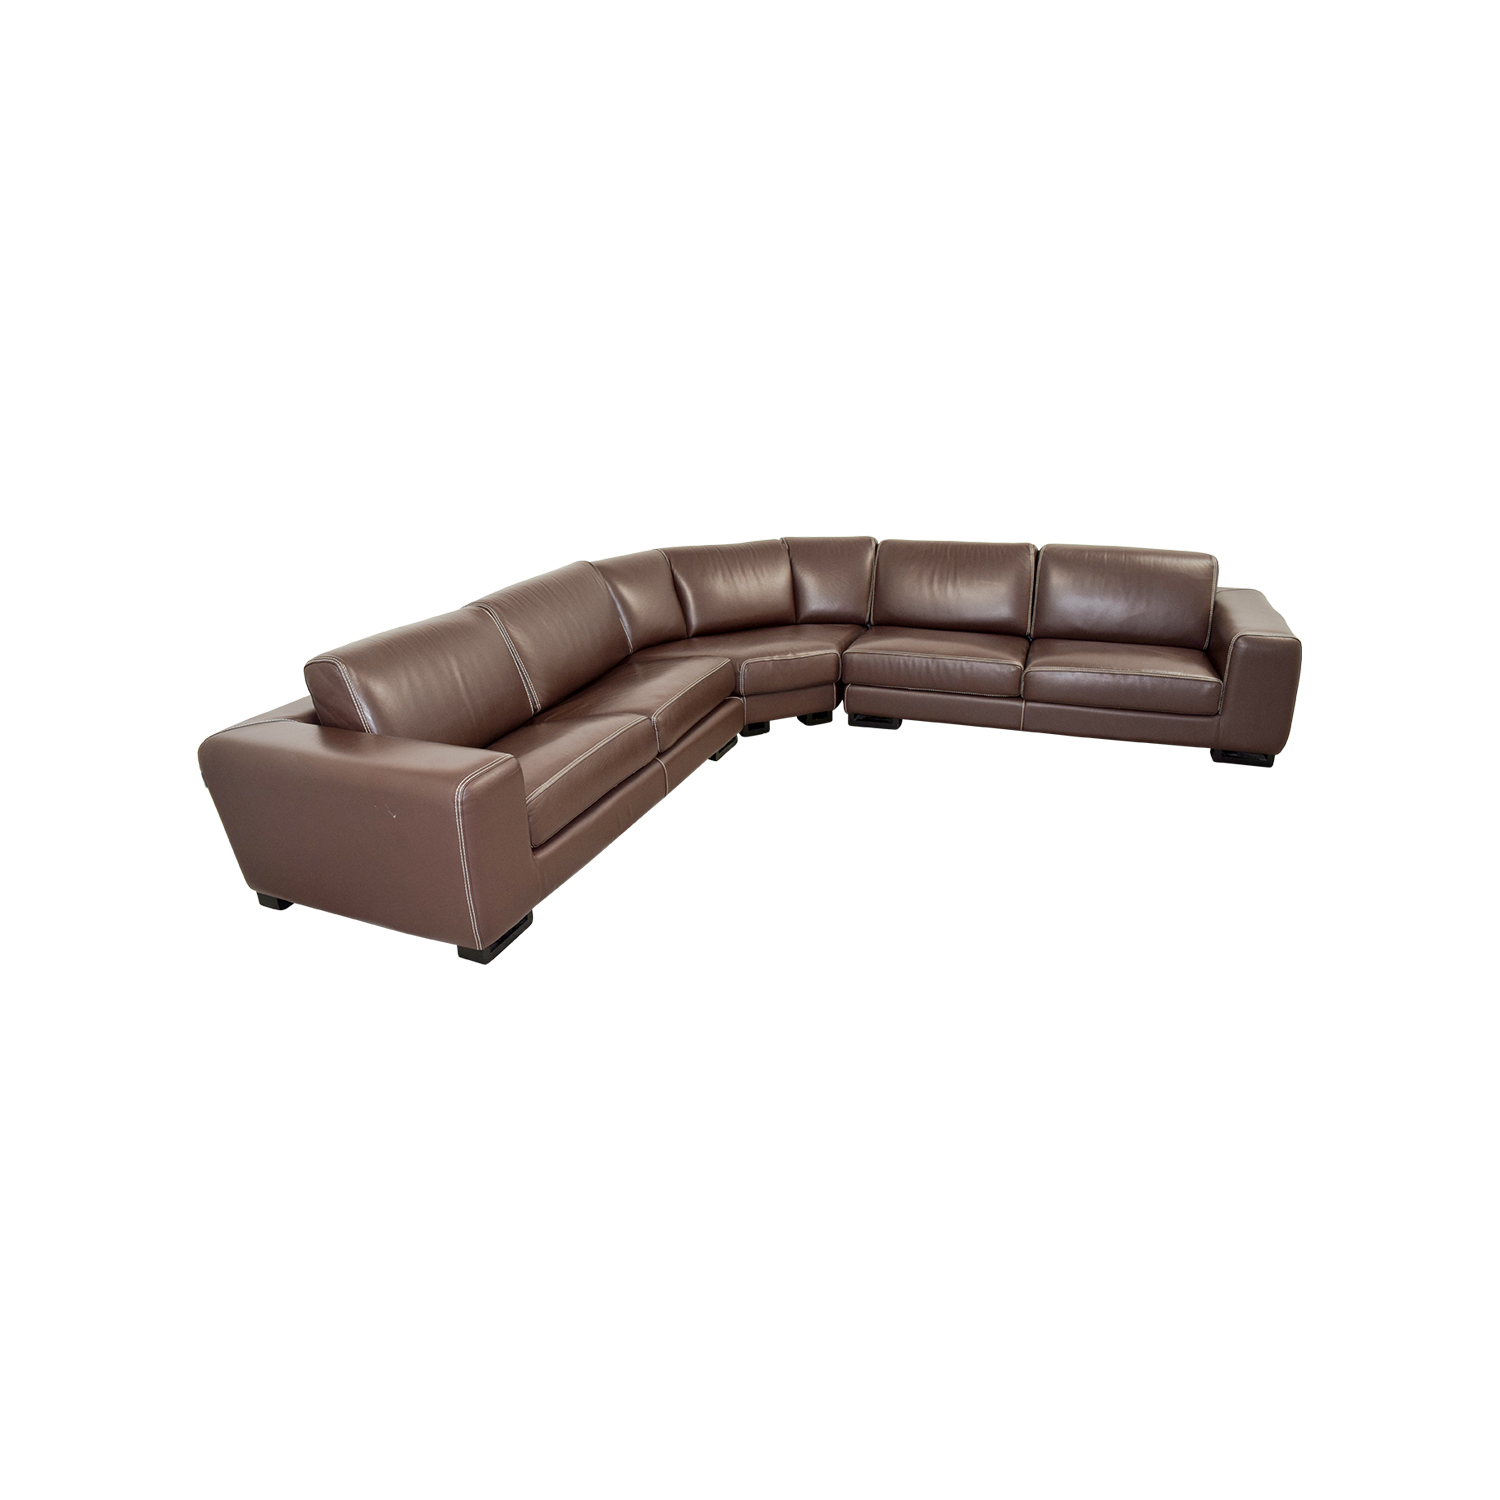 Roche Bobois Brown Leather Sectional Sofa Bed For